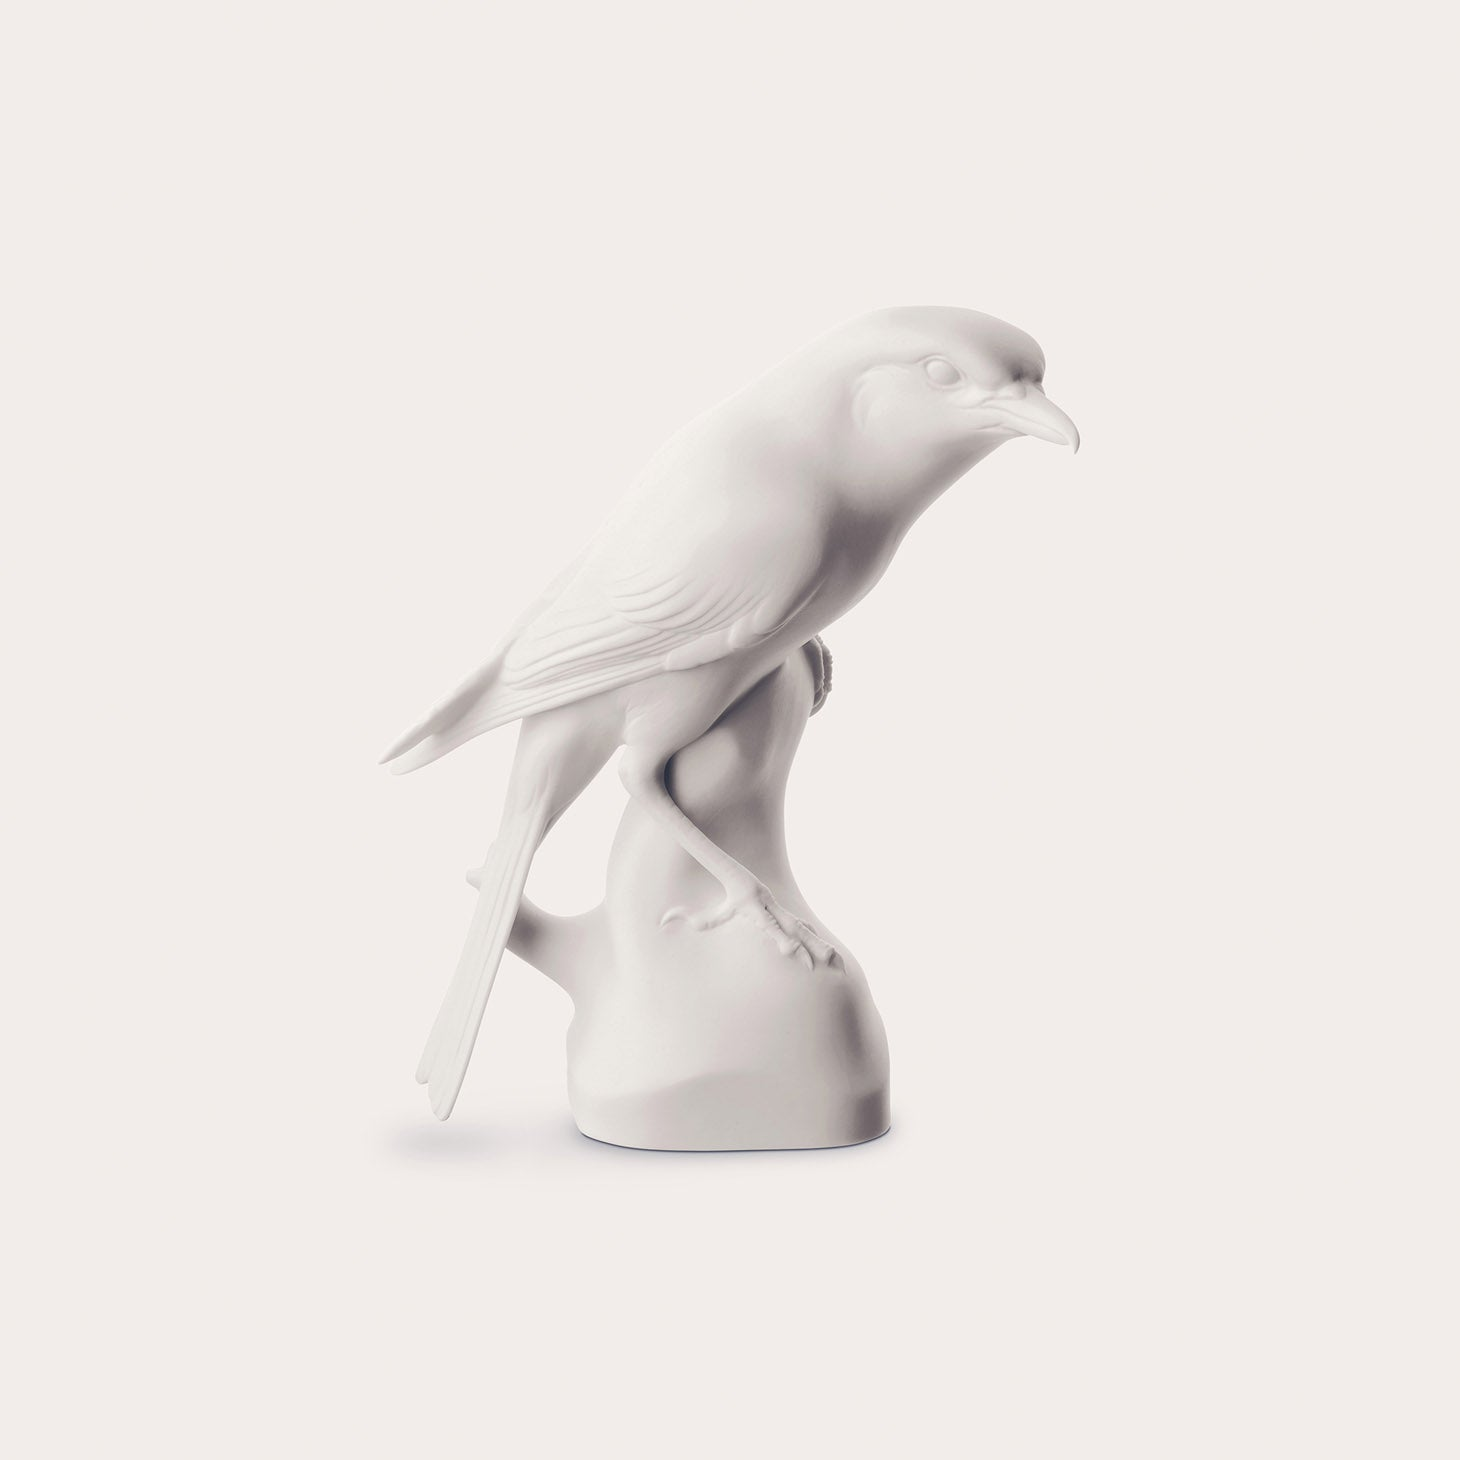 Birds-Shrike Accessories Nymphenburg Designer Furniture Sku: 542-100-10038